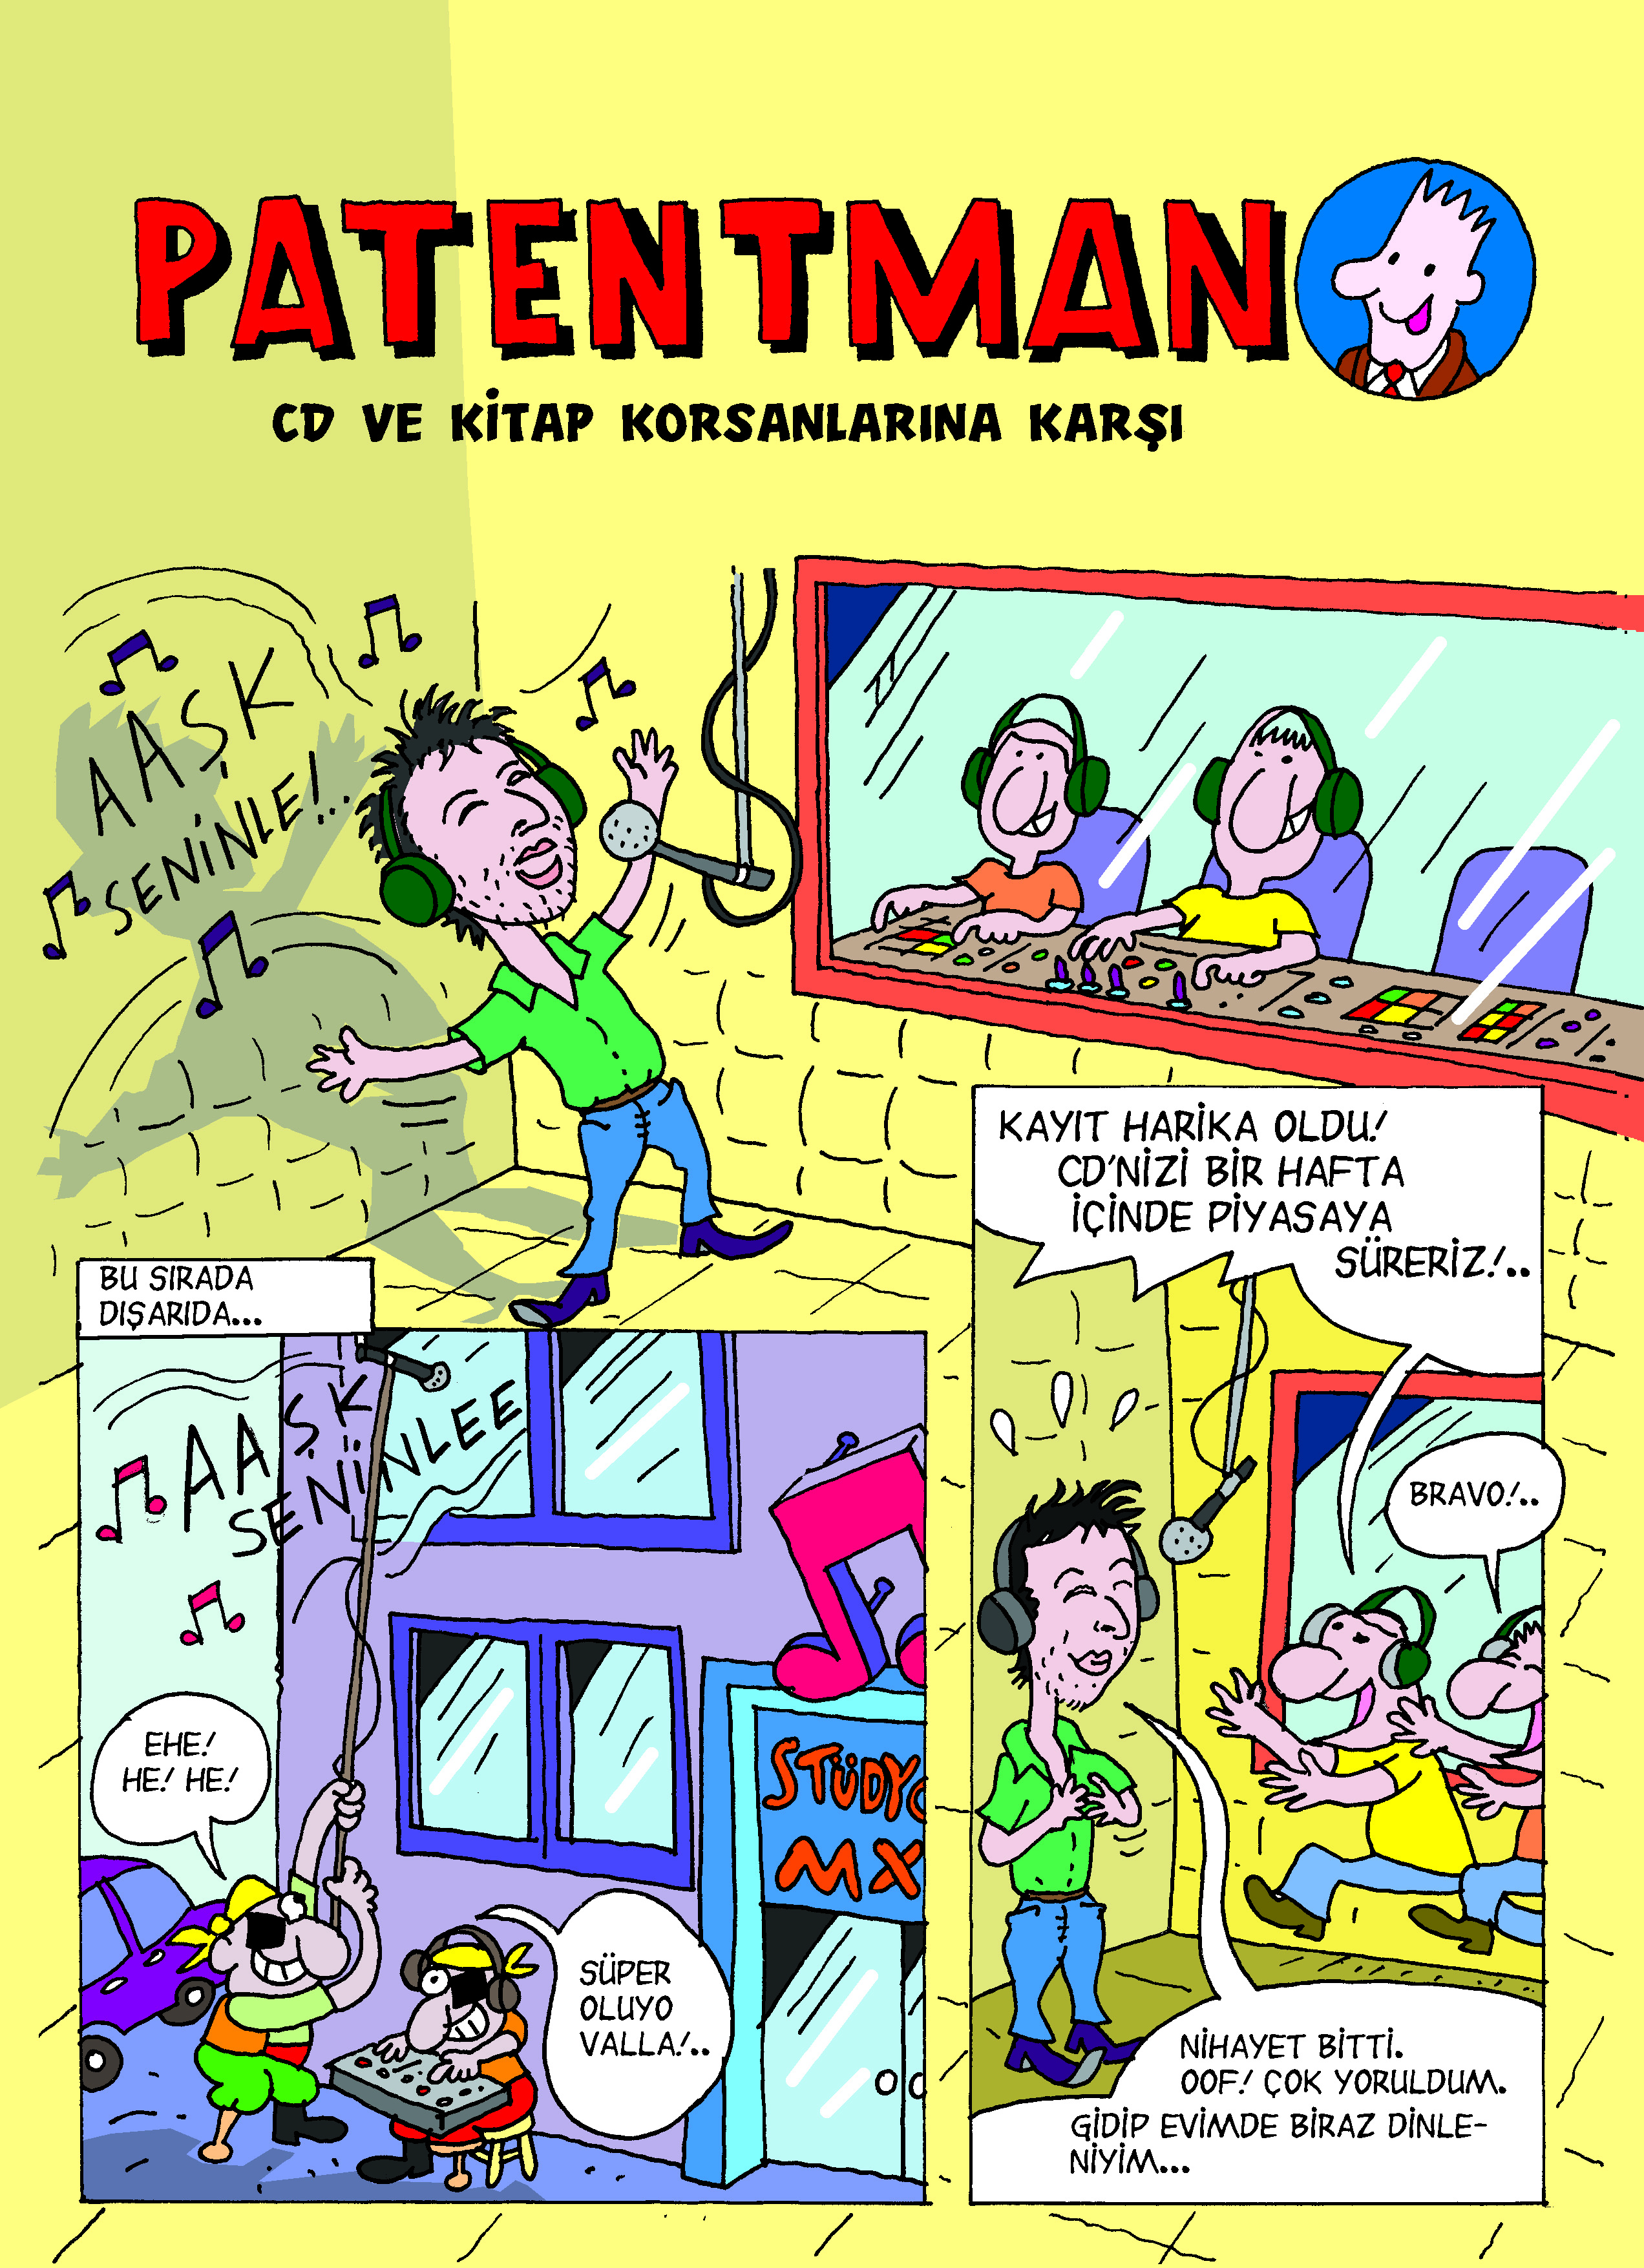 patentman-cd-ve-kitap-korsanlarina-karsi